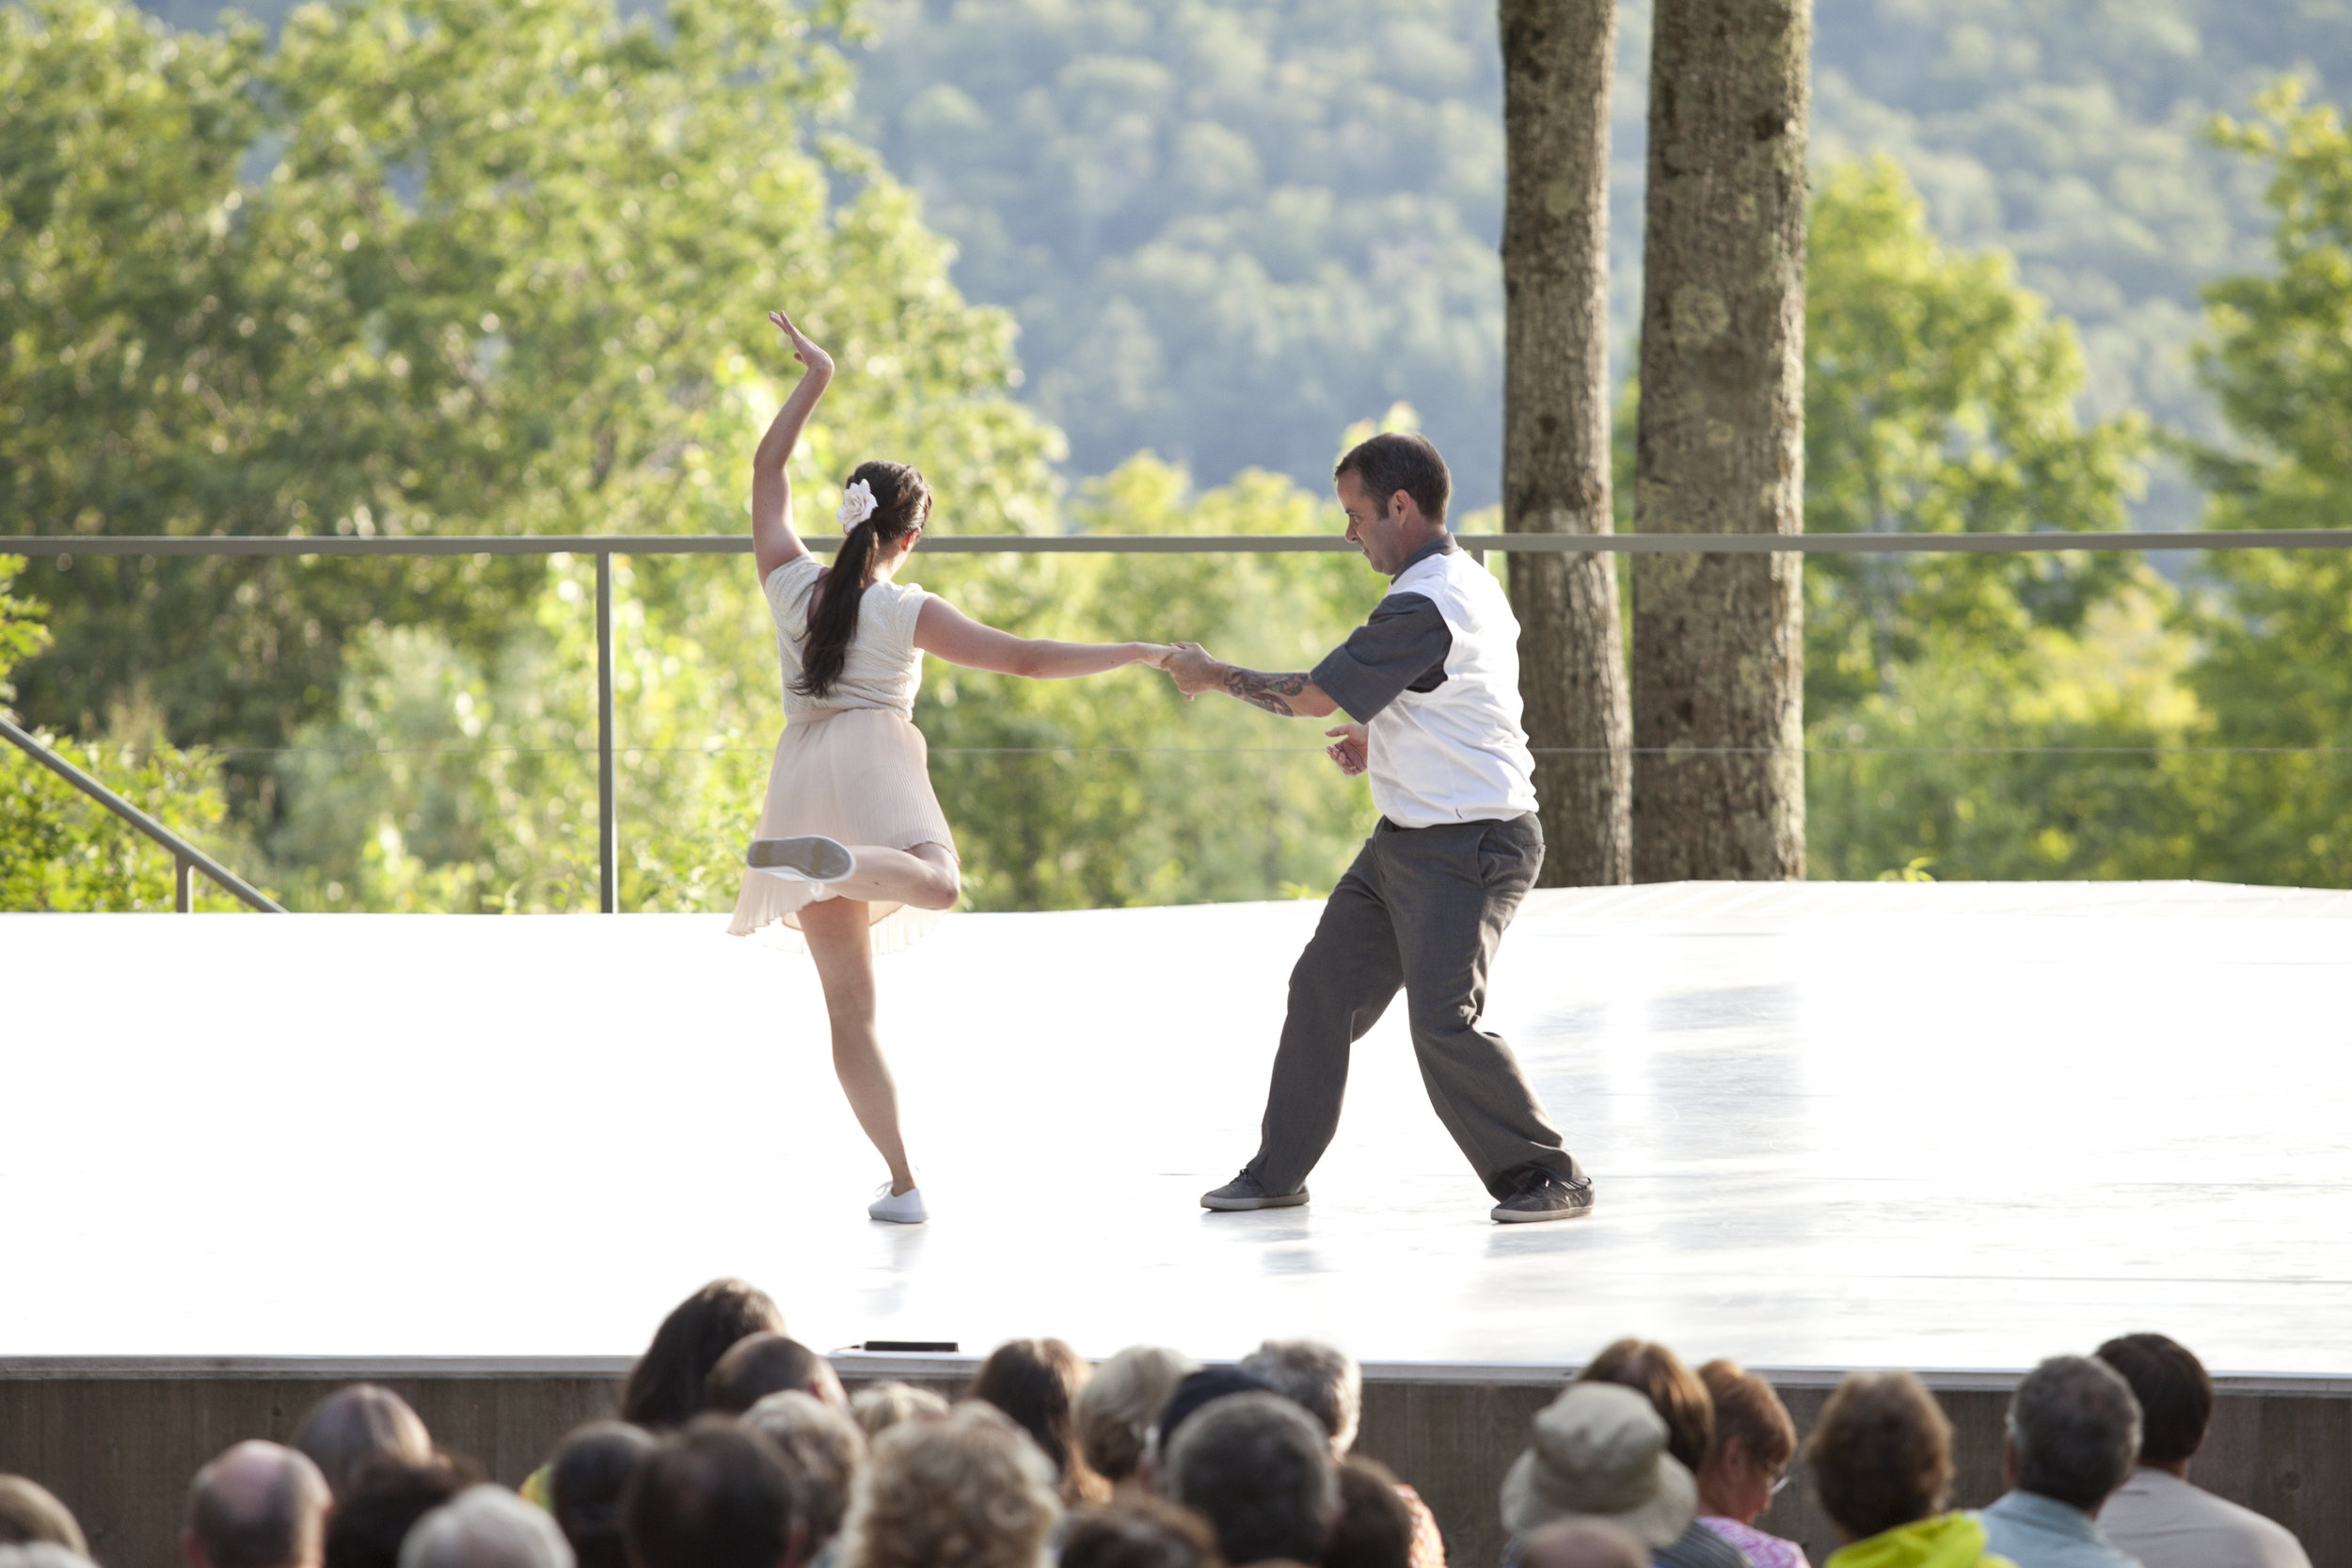 TheHellsKitchenKilowatts_2014JamieKraus_courtesyJacobsPillowDance_13.jpg